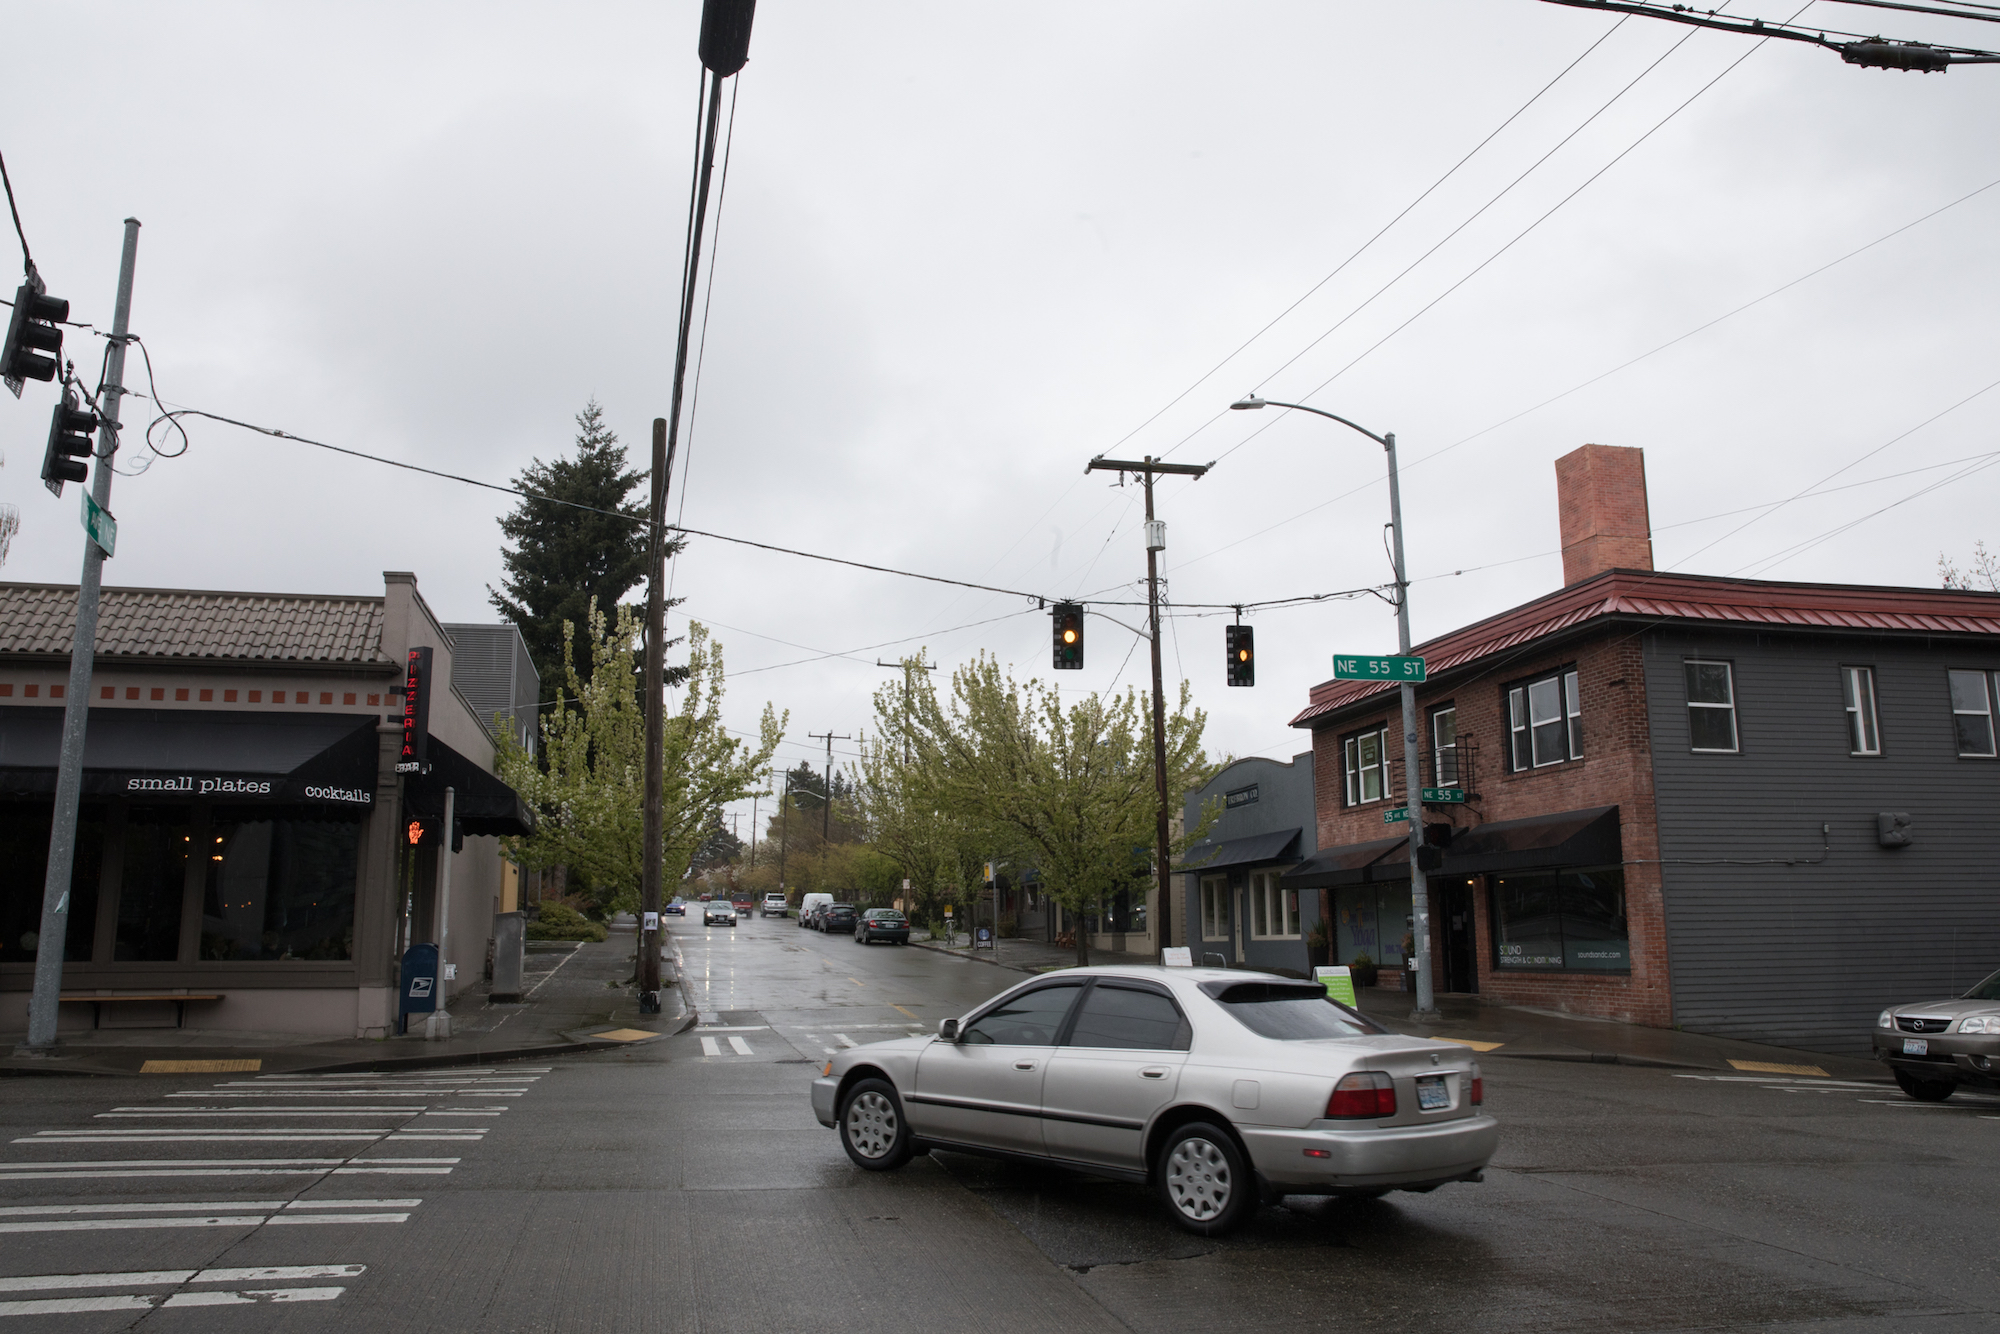 The intersection of 35th Avenue NE and NE 55th Street, looking north on 35th (Photo by Matt M. McKnight/Crosscut)